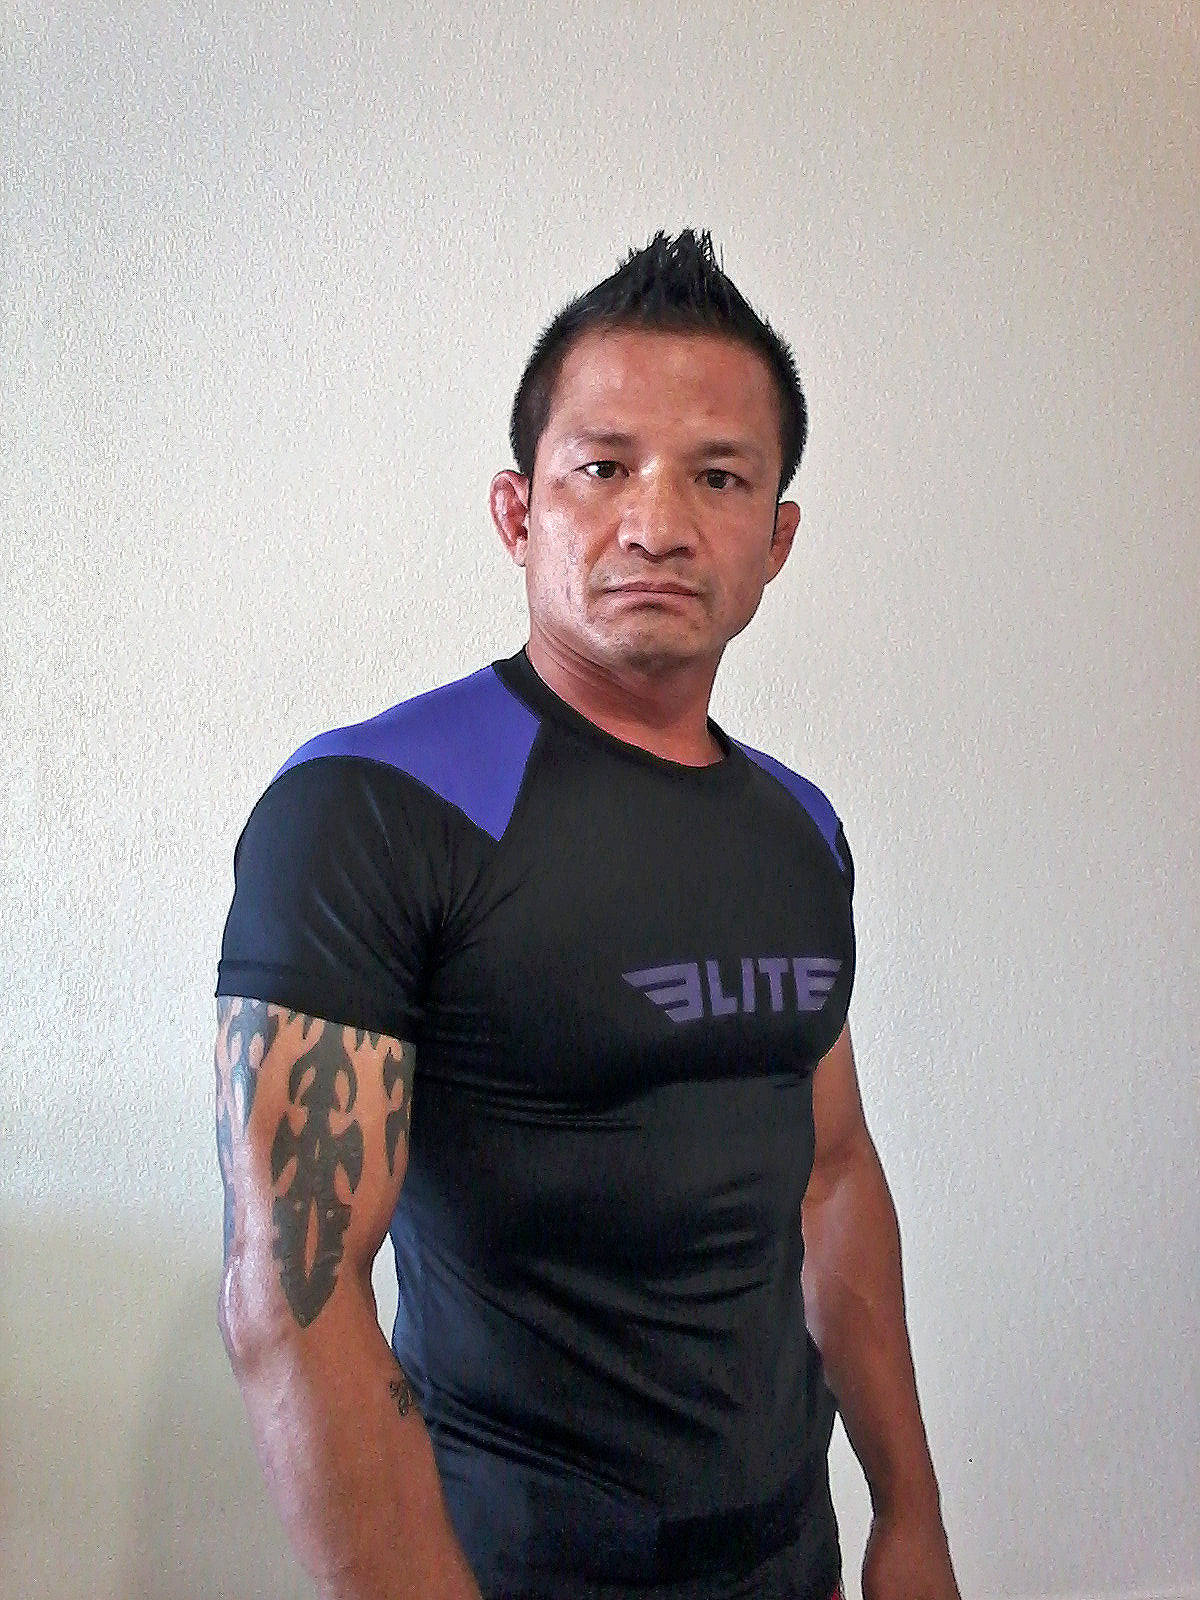 Elite Sports Team Elite Bjj Fighter Jet Lee  Image9